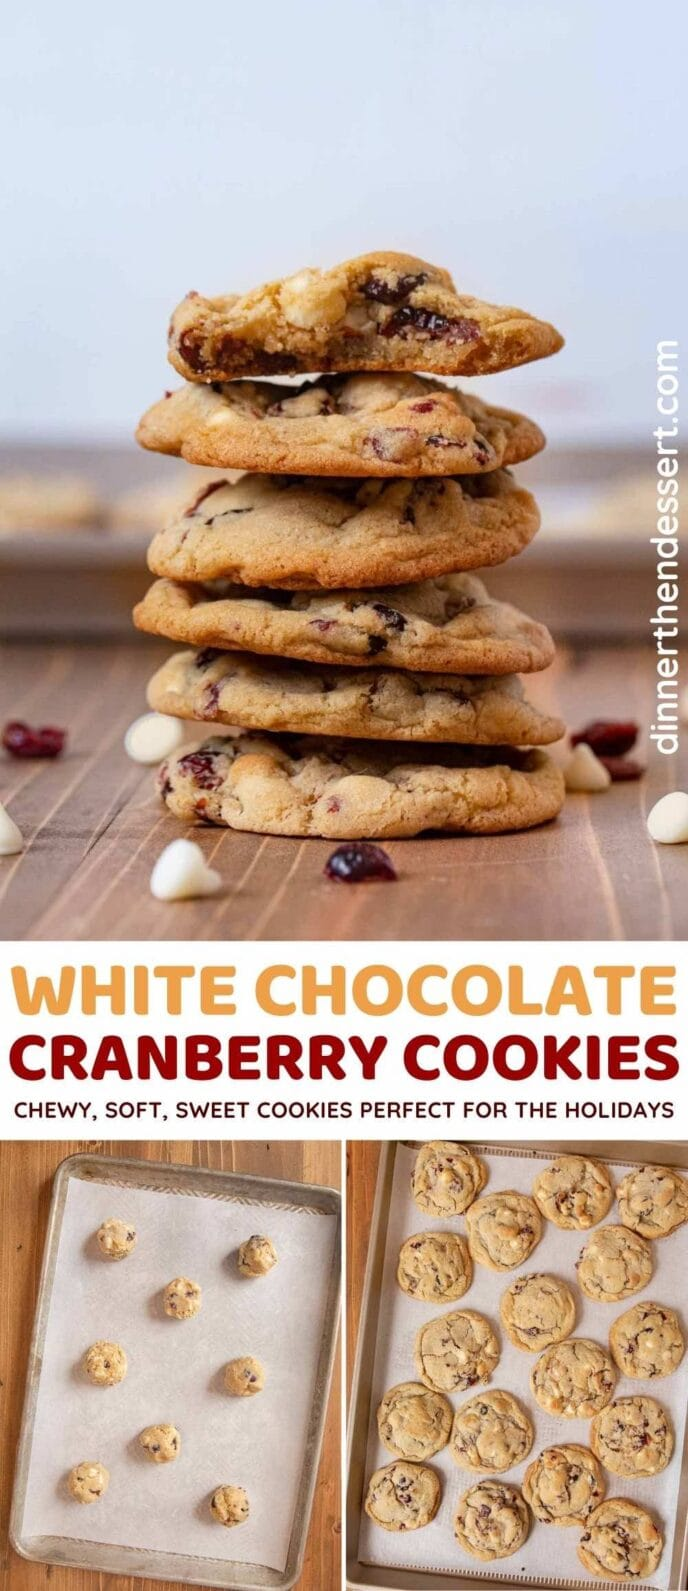 White Chocolate Cranberry Cookies collage